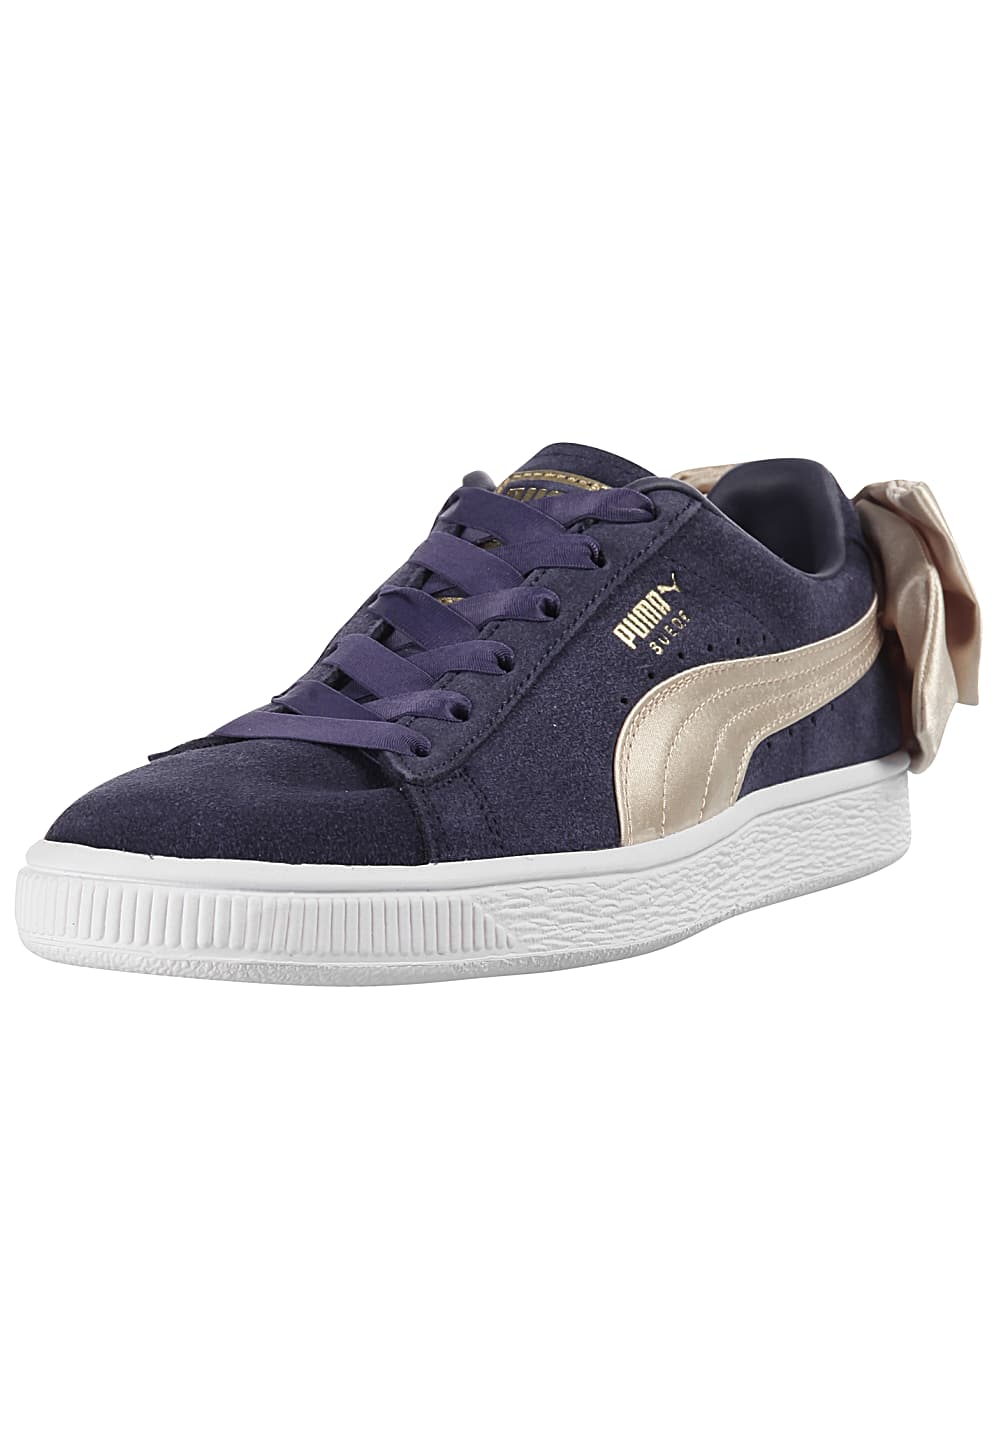 pretty nice a889b e2a83 Puma Suede Bow Varsity - Sneakers for Women - Blue